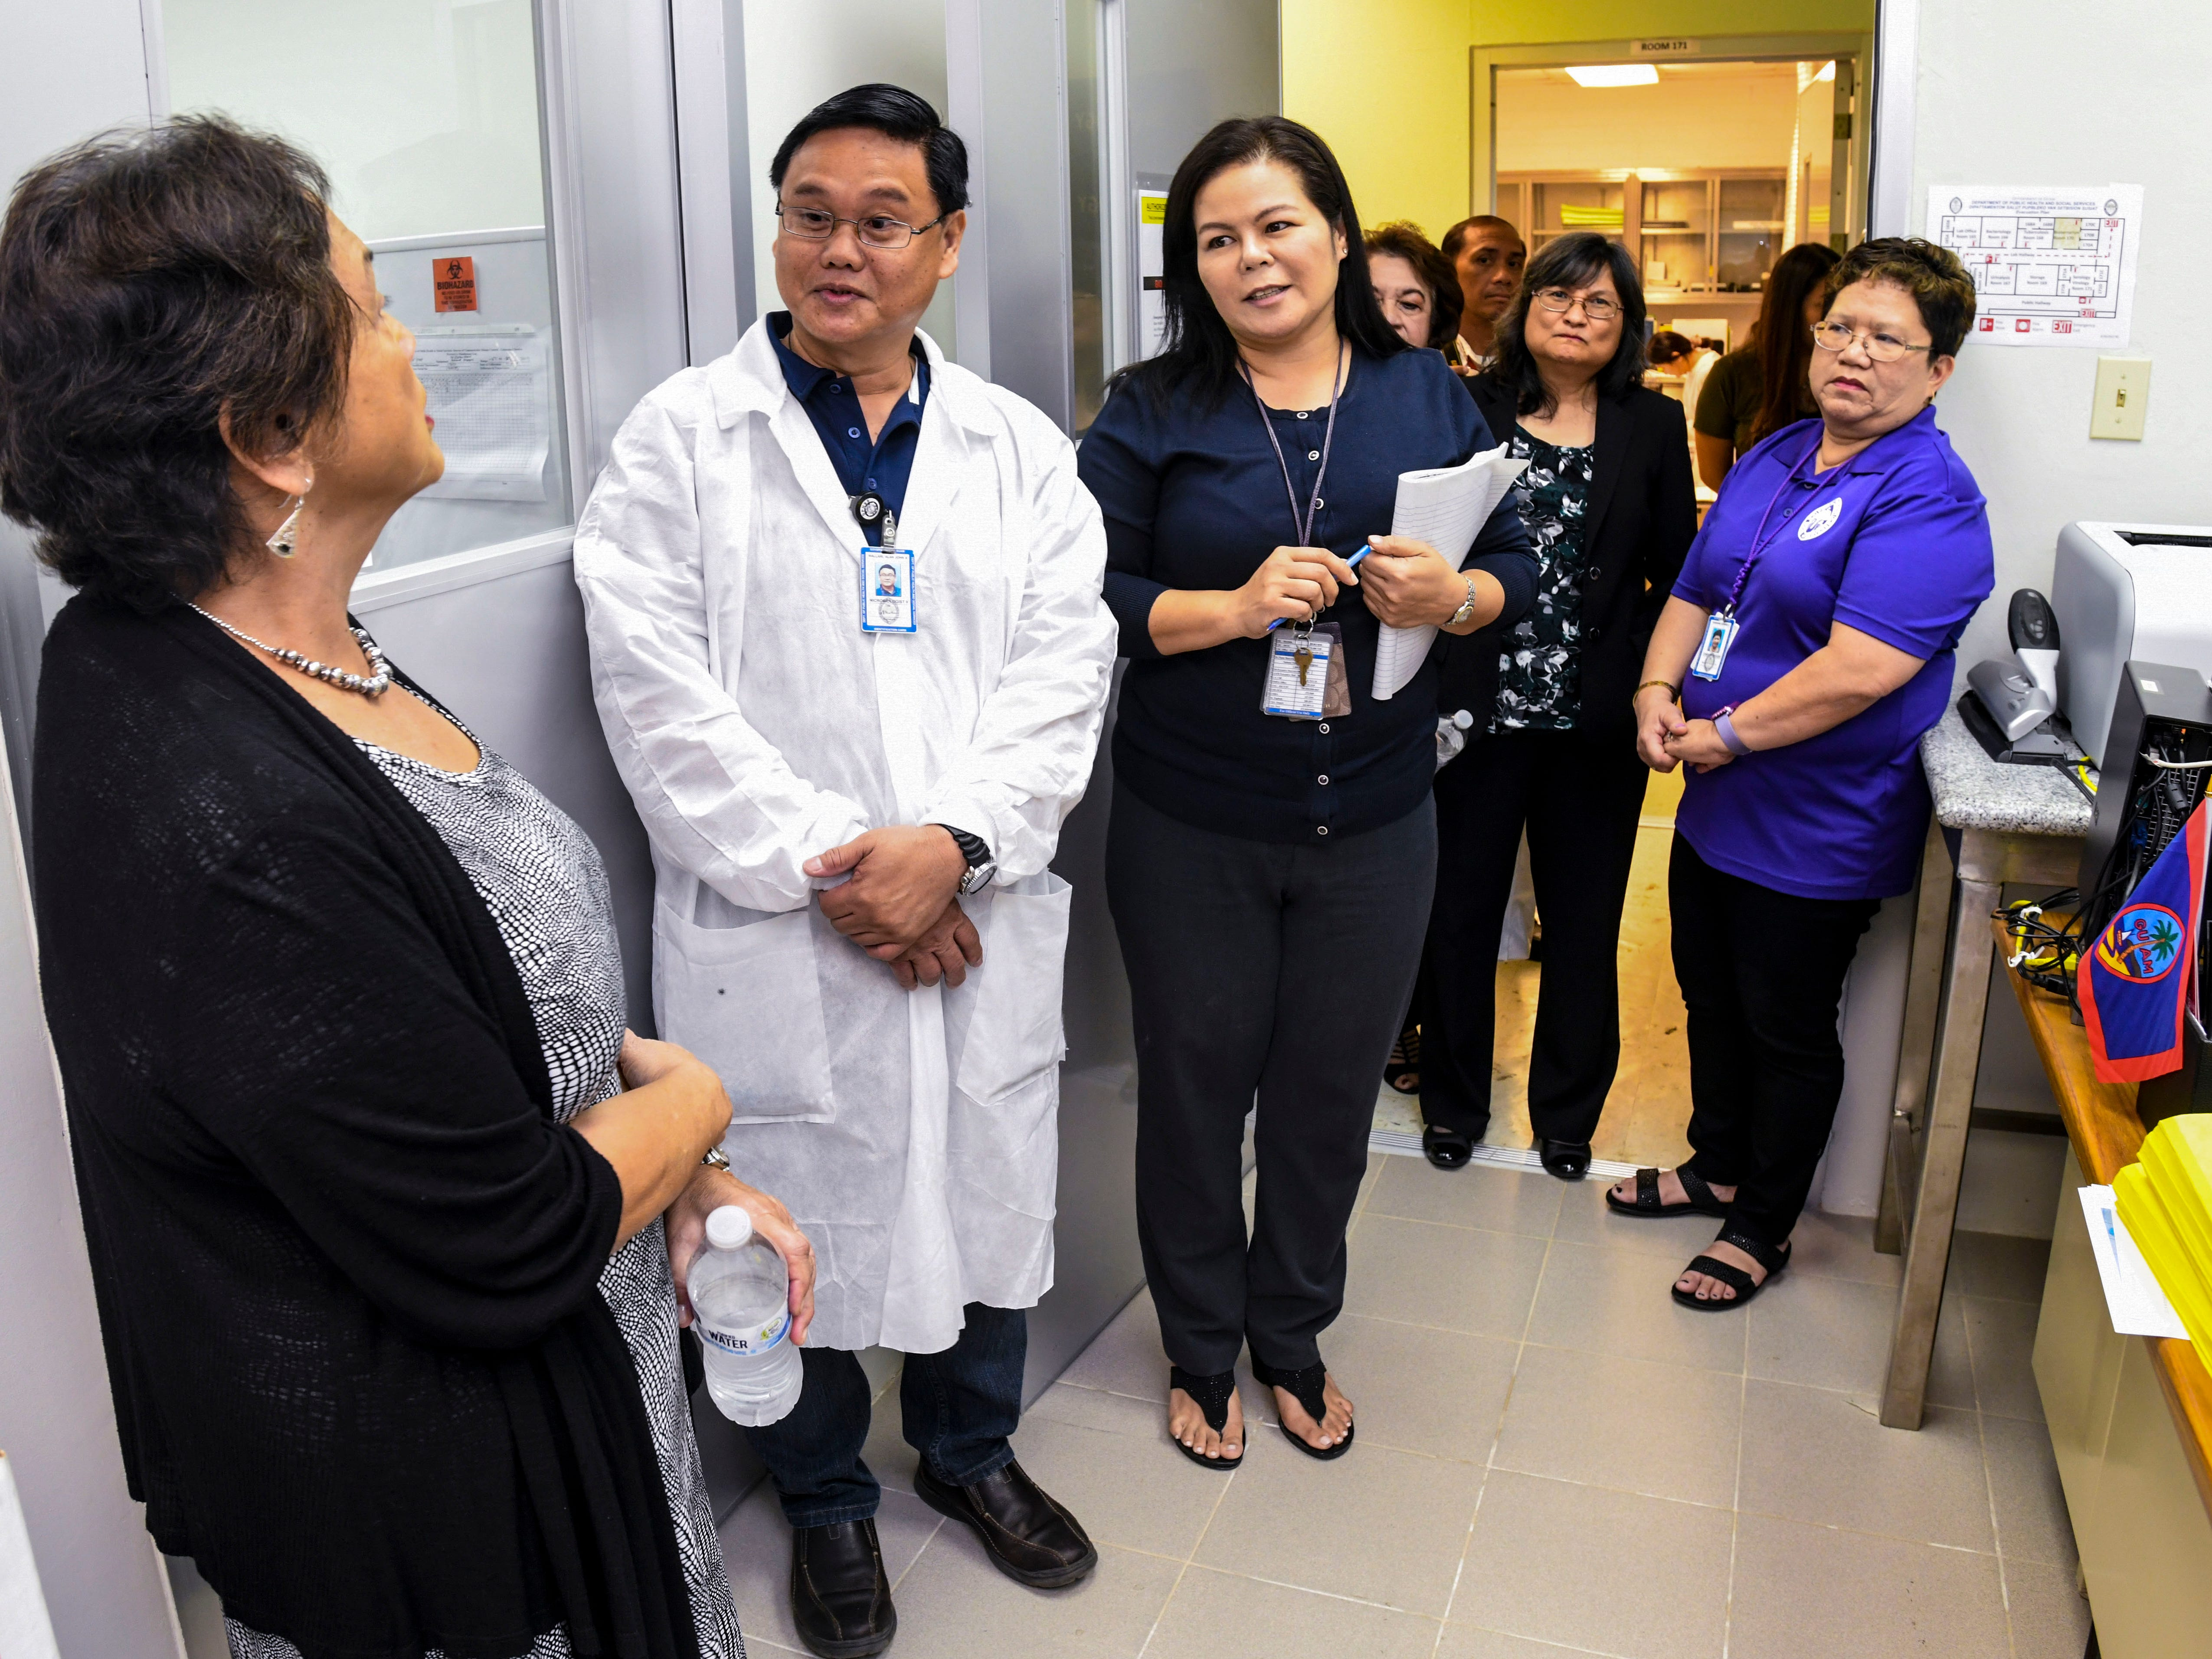 Gov. Lou Leon Guerrero, left, chats with Microbiologist Alan John Malari and other stakeholders during a tour of the Department of Public Health and Social Services in Mangilao on Wednesday, Feb. 13, 2019.